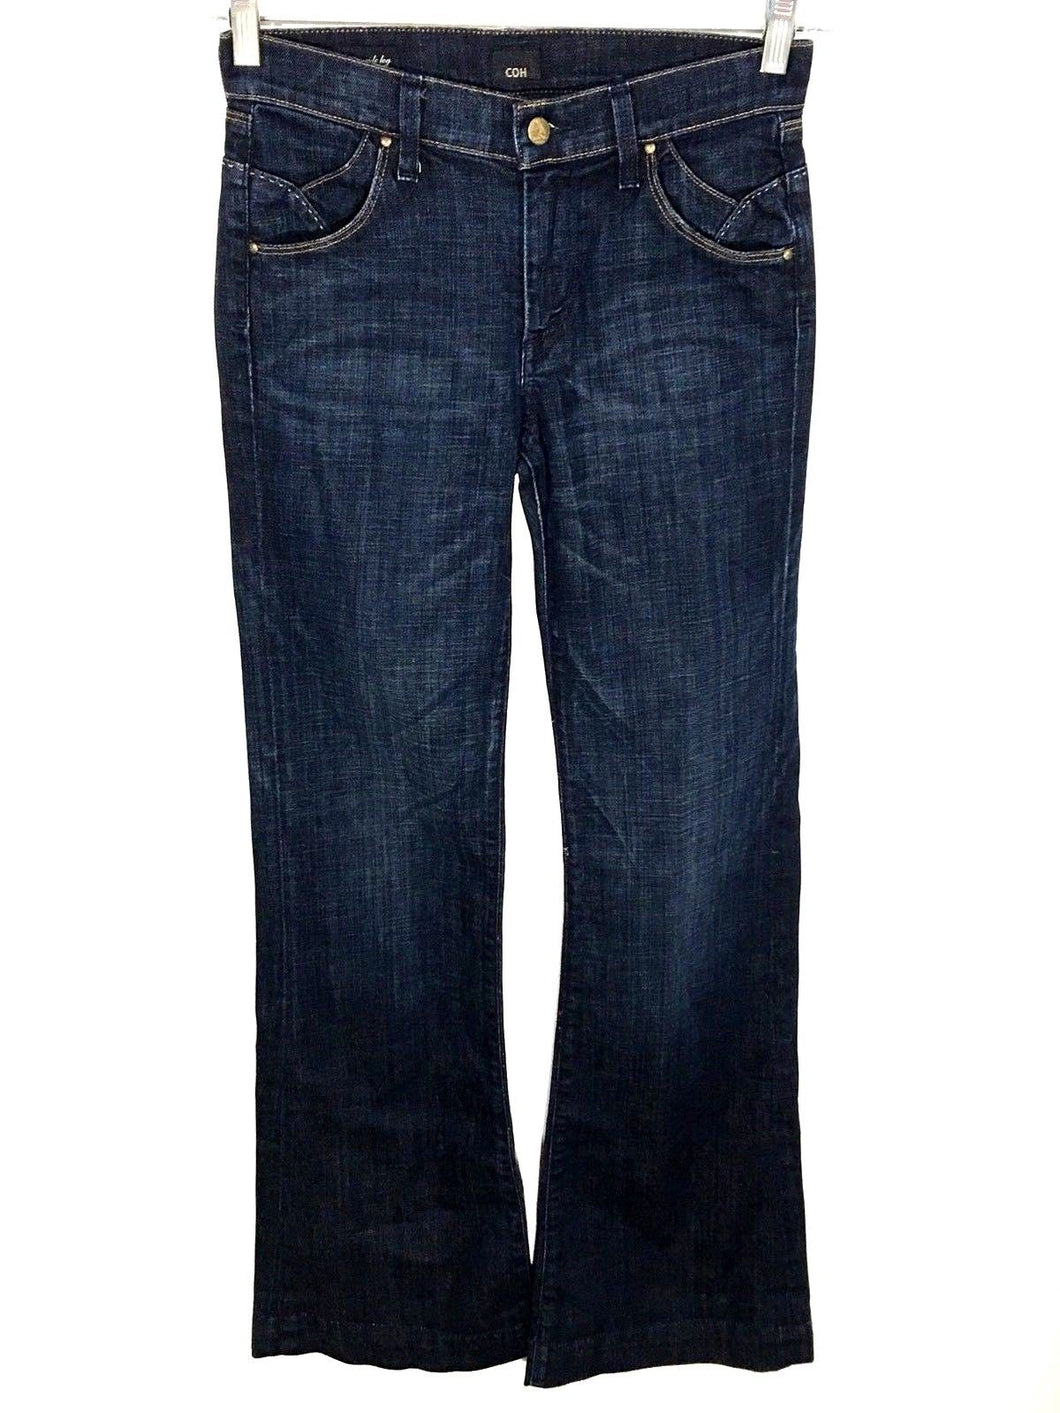 Citizens of Humanity Jeans Hutton High Rise Wide Leg Womens 25 Actual 26 x 31 - Preowned - FunkyCrap Boutique